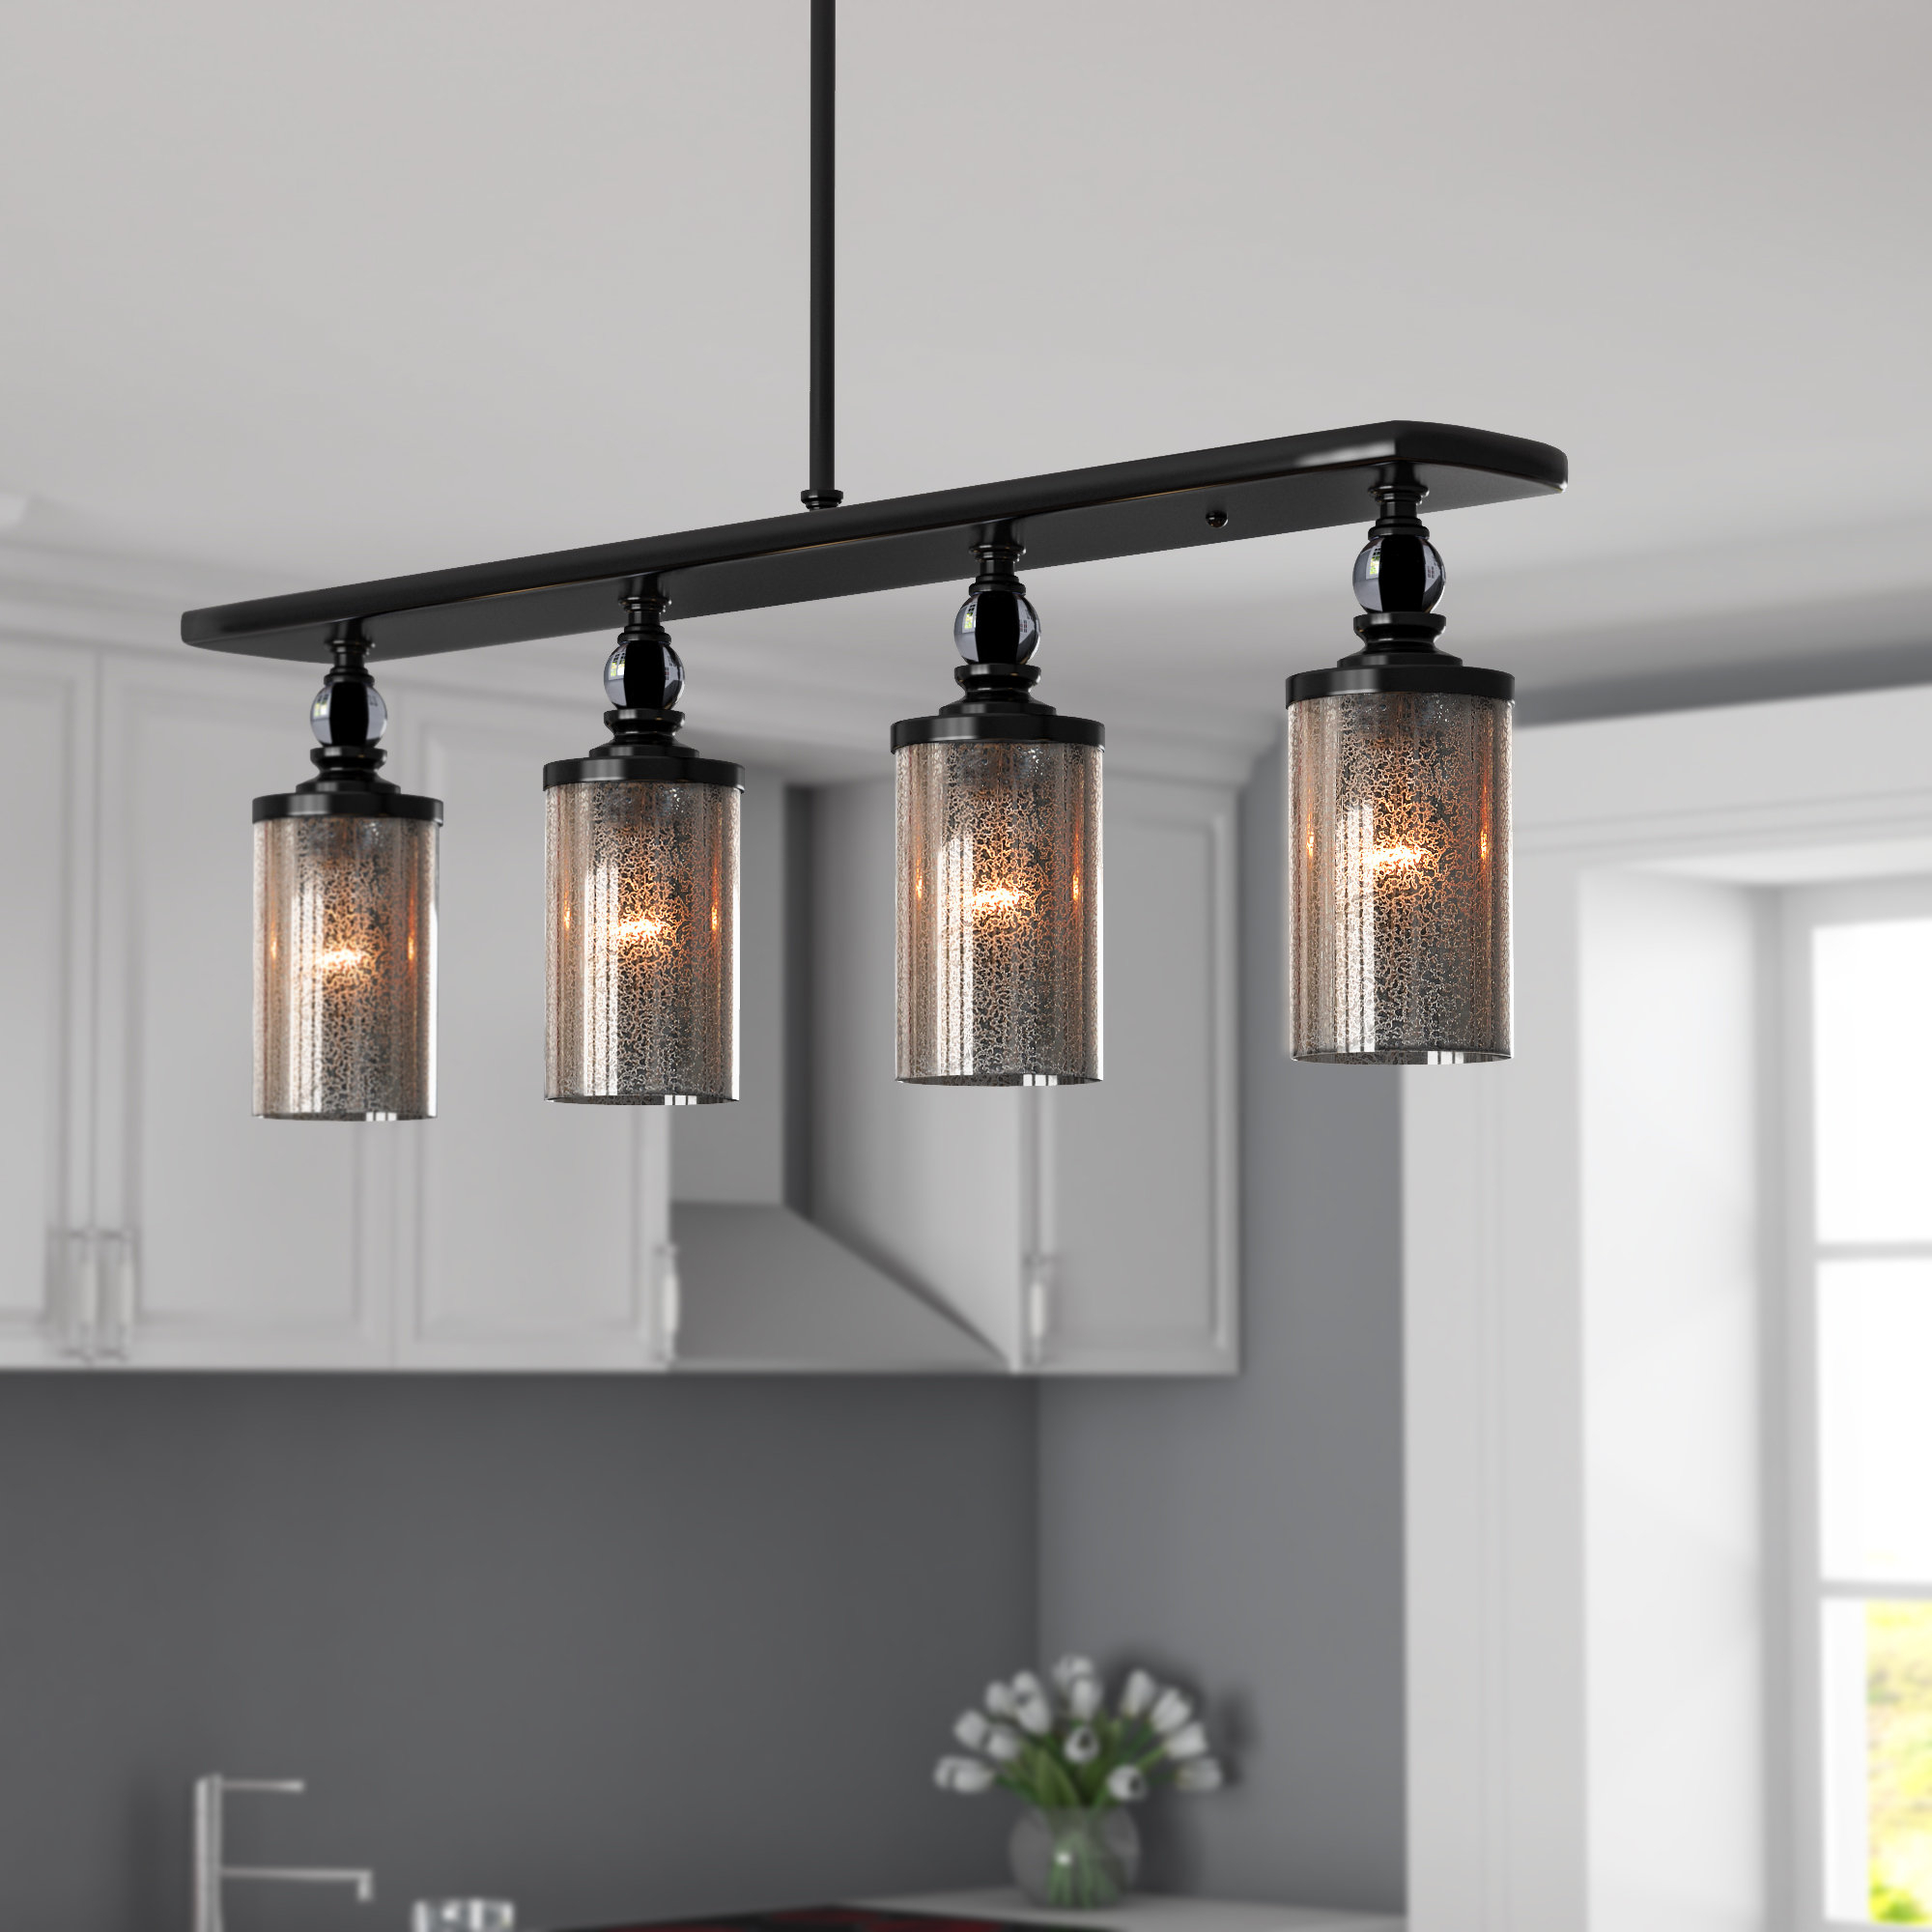 Orndorff 4 Light Kitchen Island Pendant Regarding Preferred Smithville 4 Light Kitchen Island Pendants (View 12 of 20)